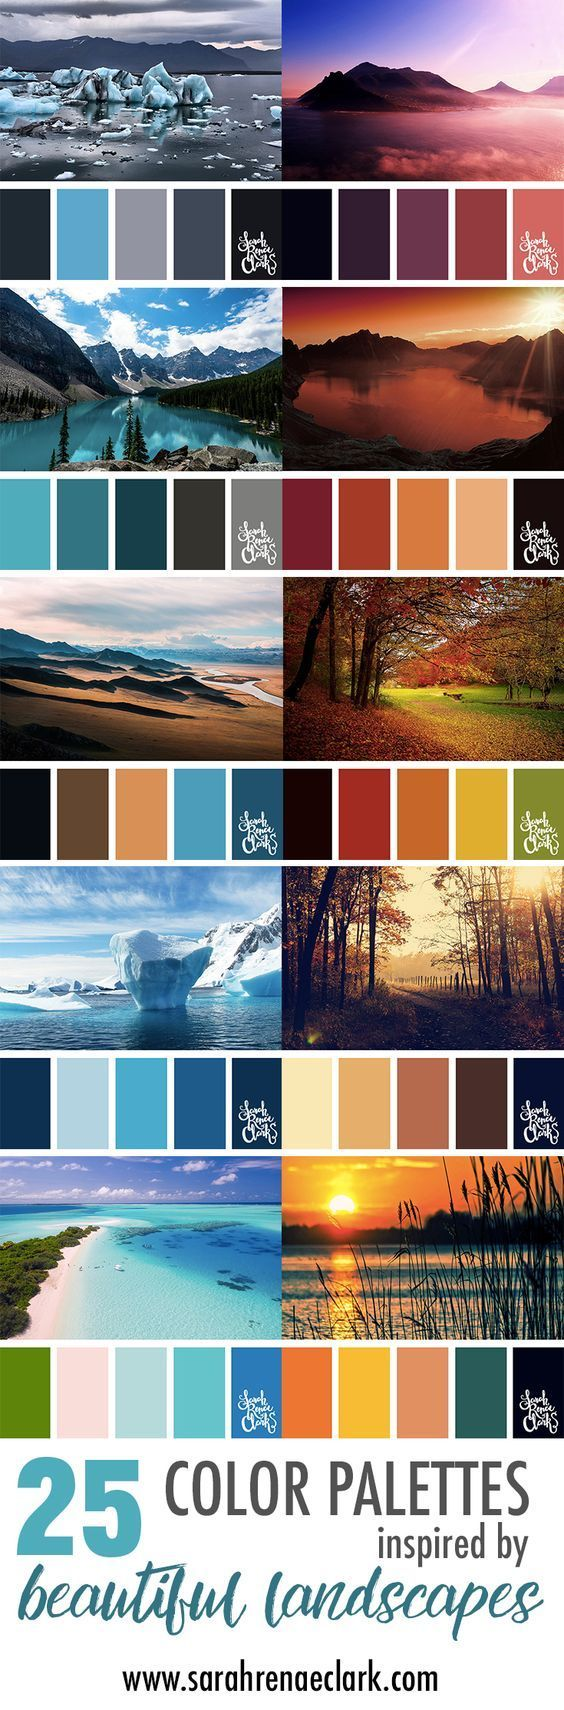 These amazing landscapes are a great source of color inspiration   Click to see all 25 color combinations inspired by beautiful landscapes. You can find more color schemes at http://sarahrenaeclark.com   Colour palettes, colour schemes, color therapy, mood board, color hues and tones